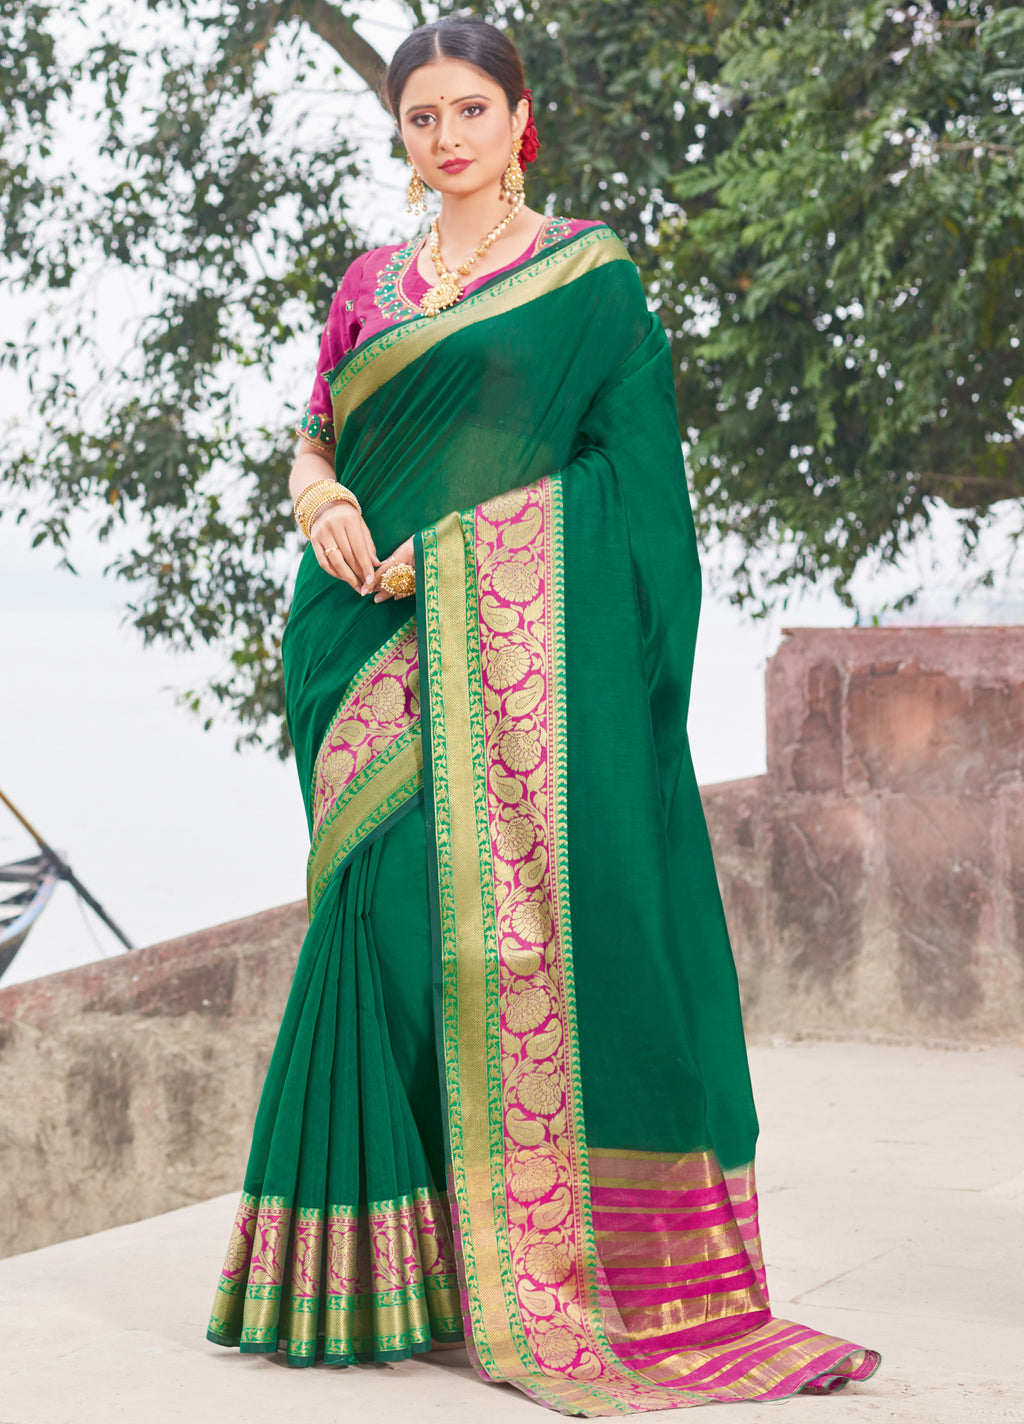 Green Color Handloom Silk Sarees With Beautiful Border For Religious Function NYF-7329